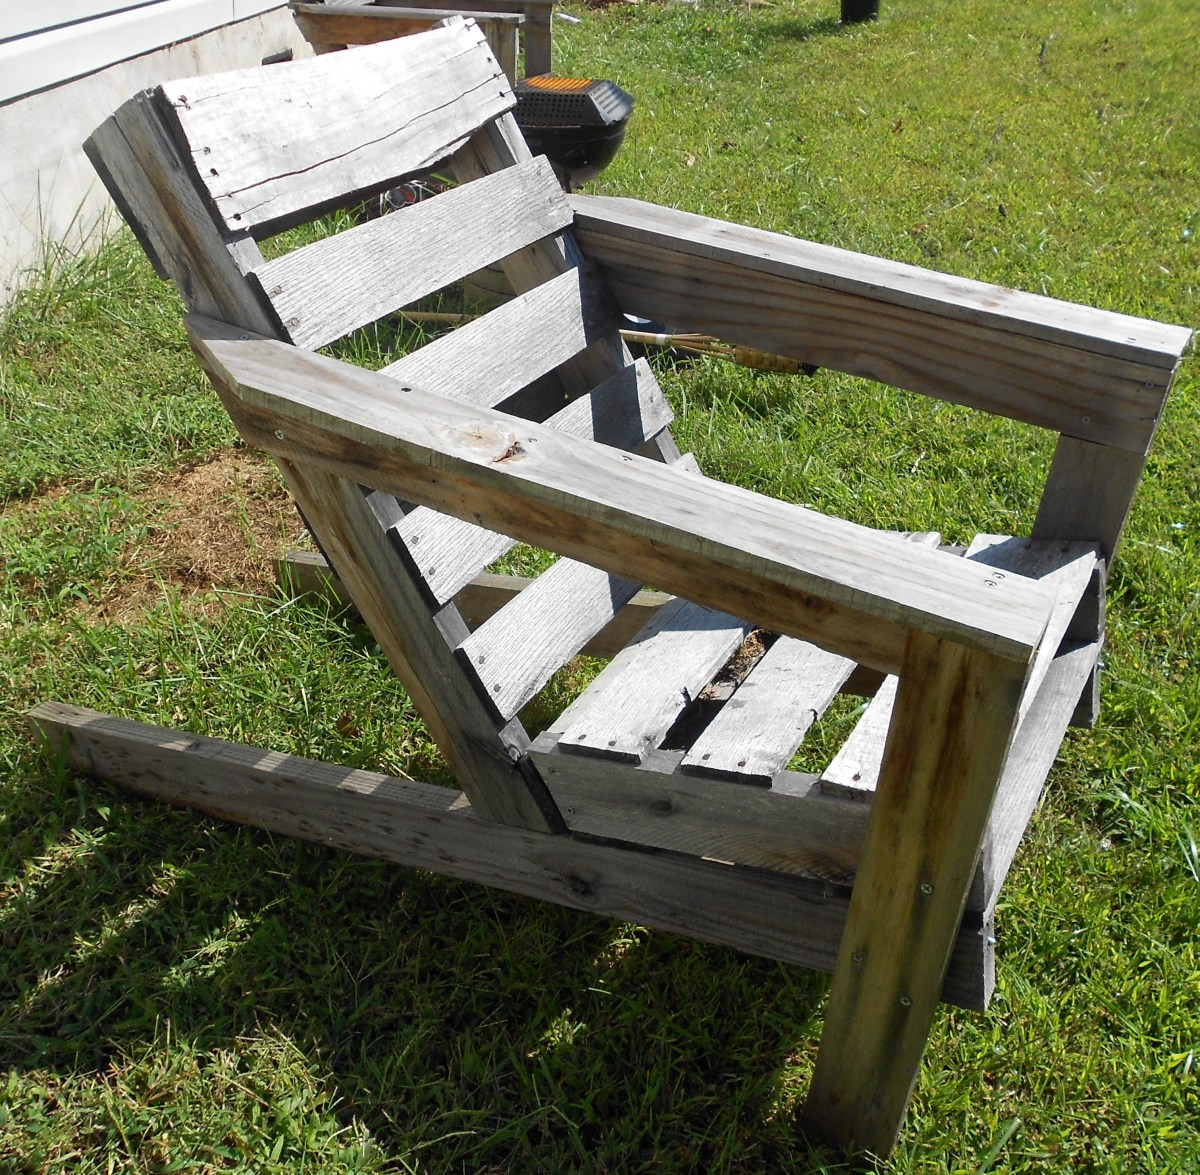 This is a great adirondack chair design using reclaimed shipping pallets.  The best part is its free! Used shipping pallets can be found just about anywhere.